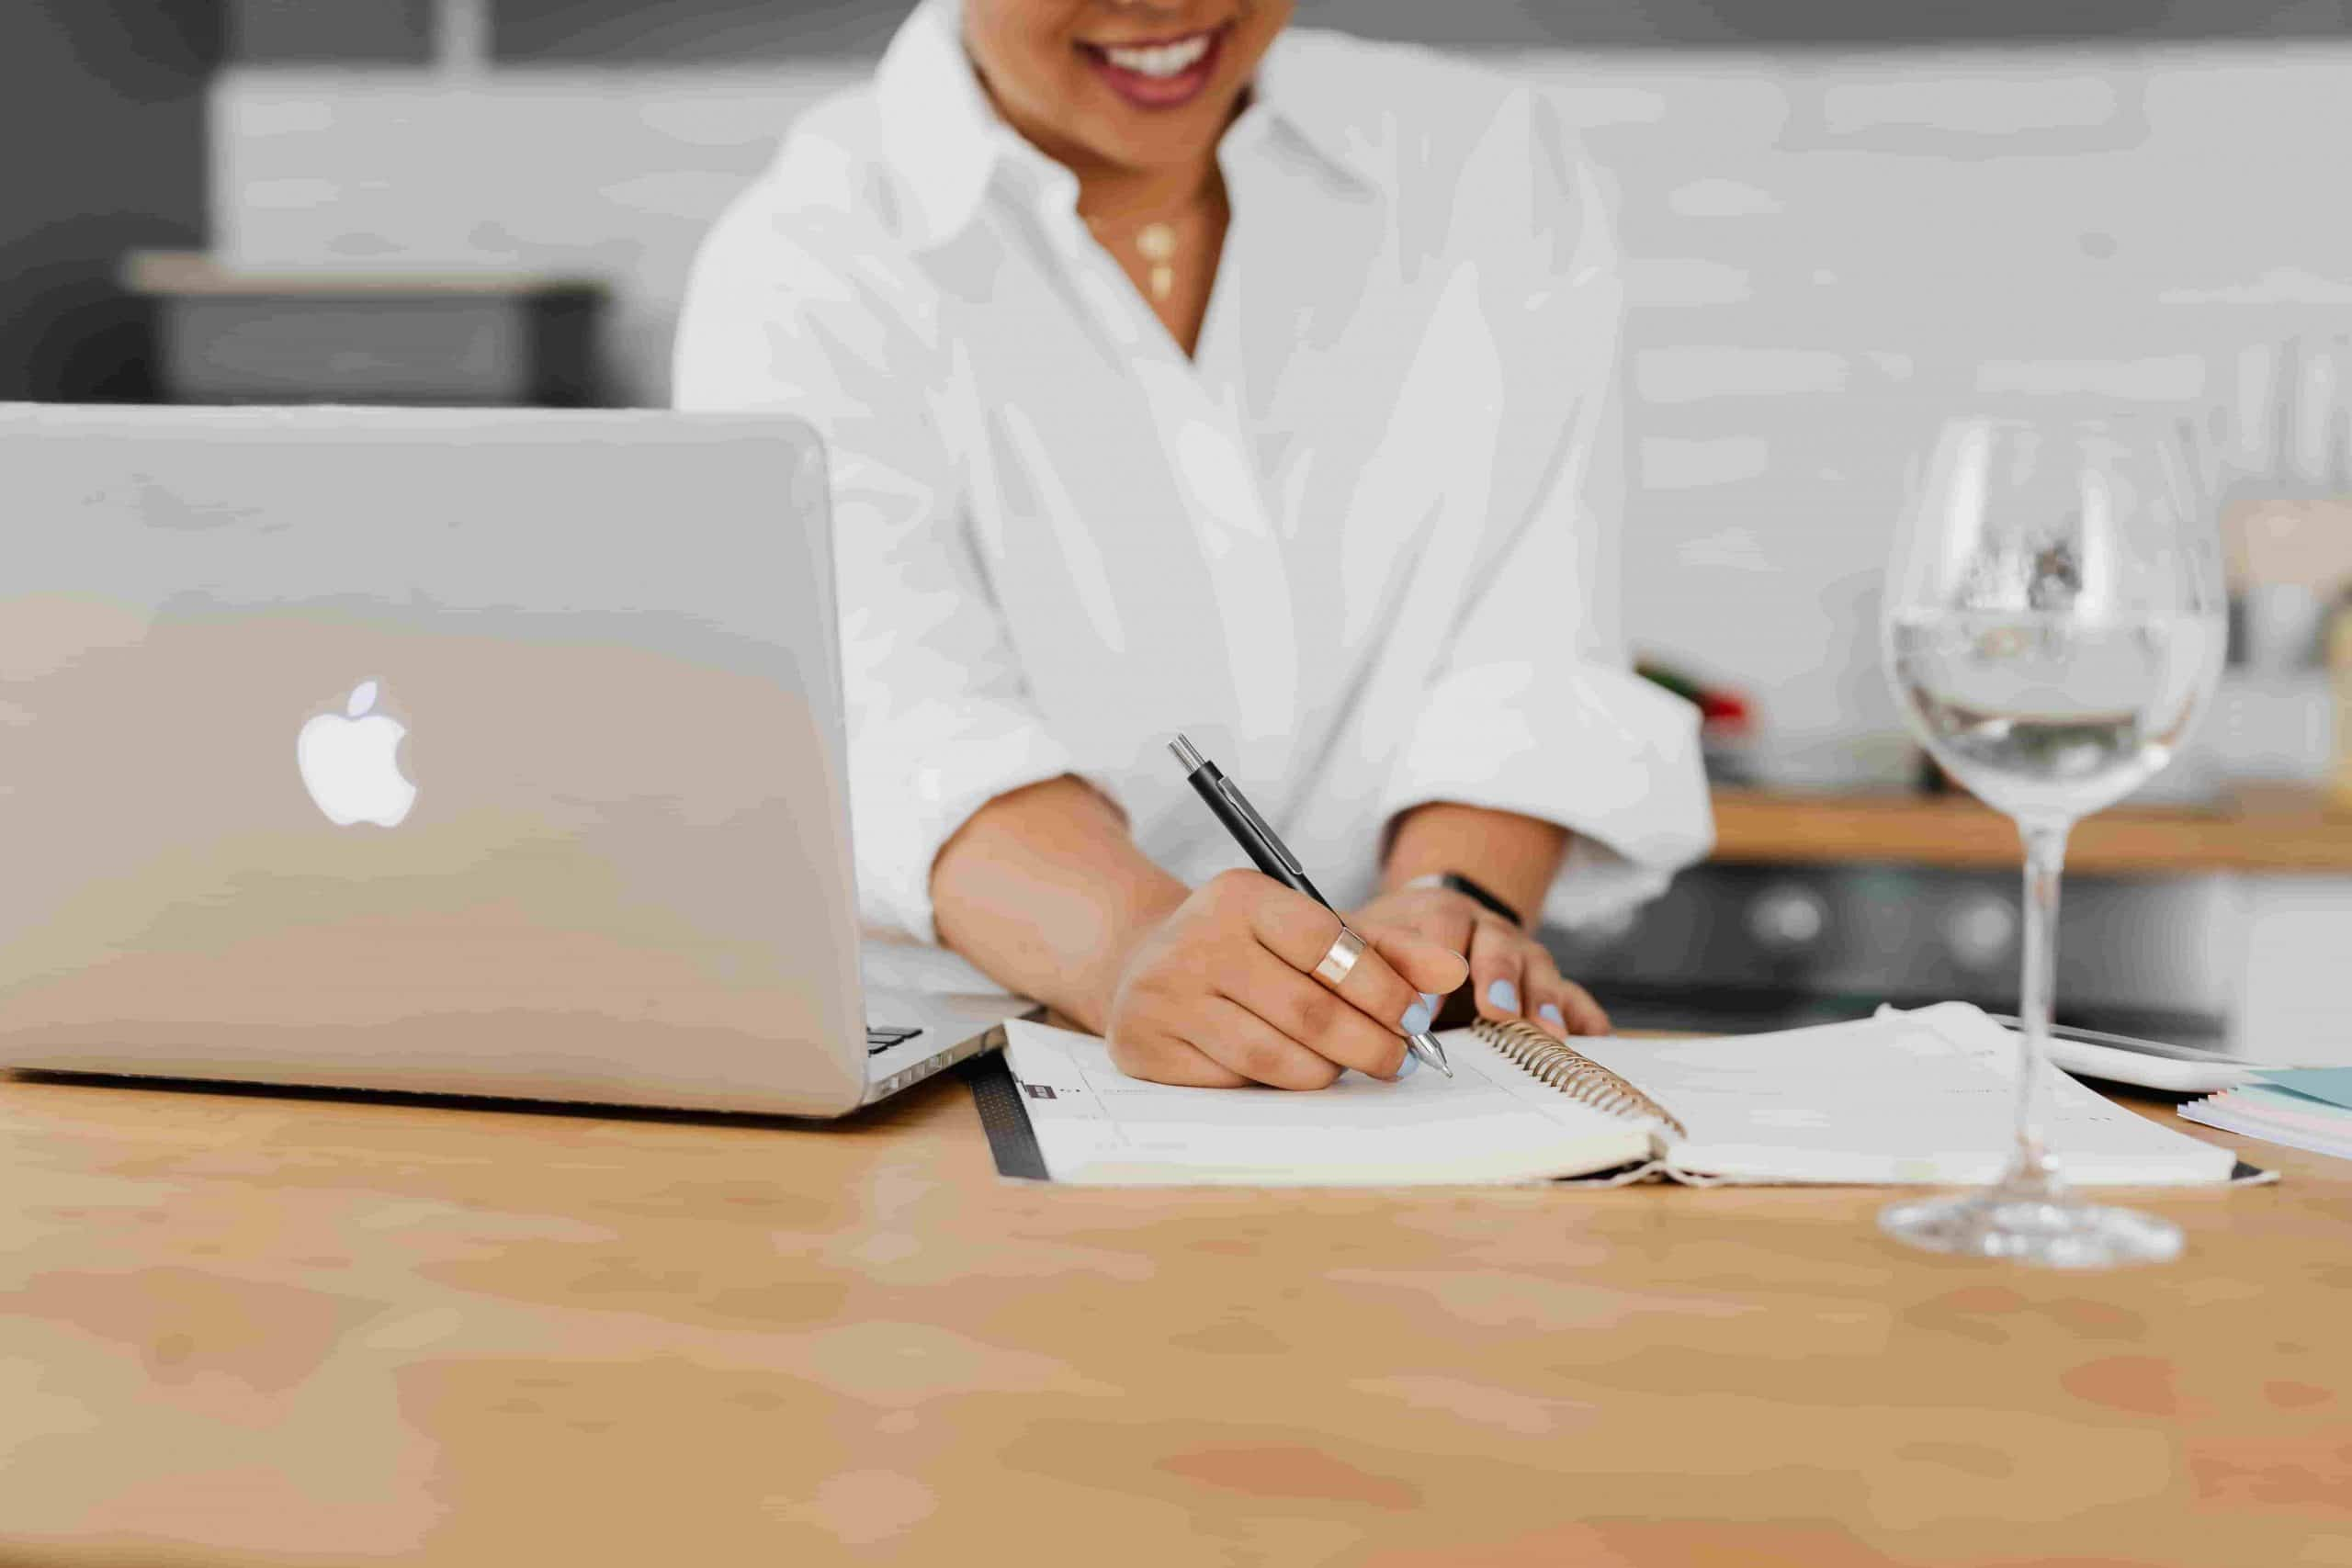 Webinar Transcription for SEO; woman taking notes in her notepad and working on her Macbook; a wine glass placed on the table